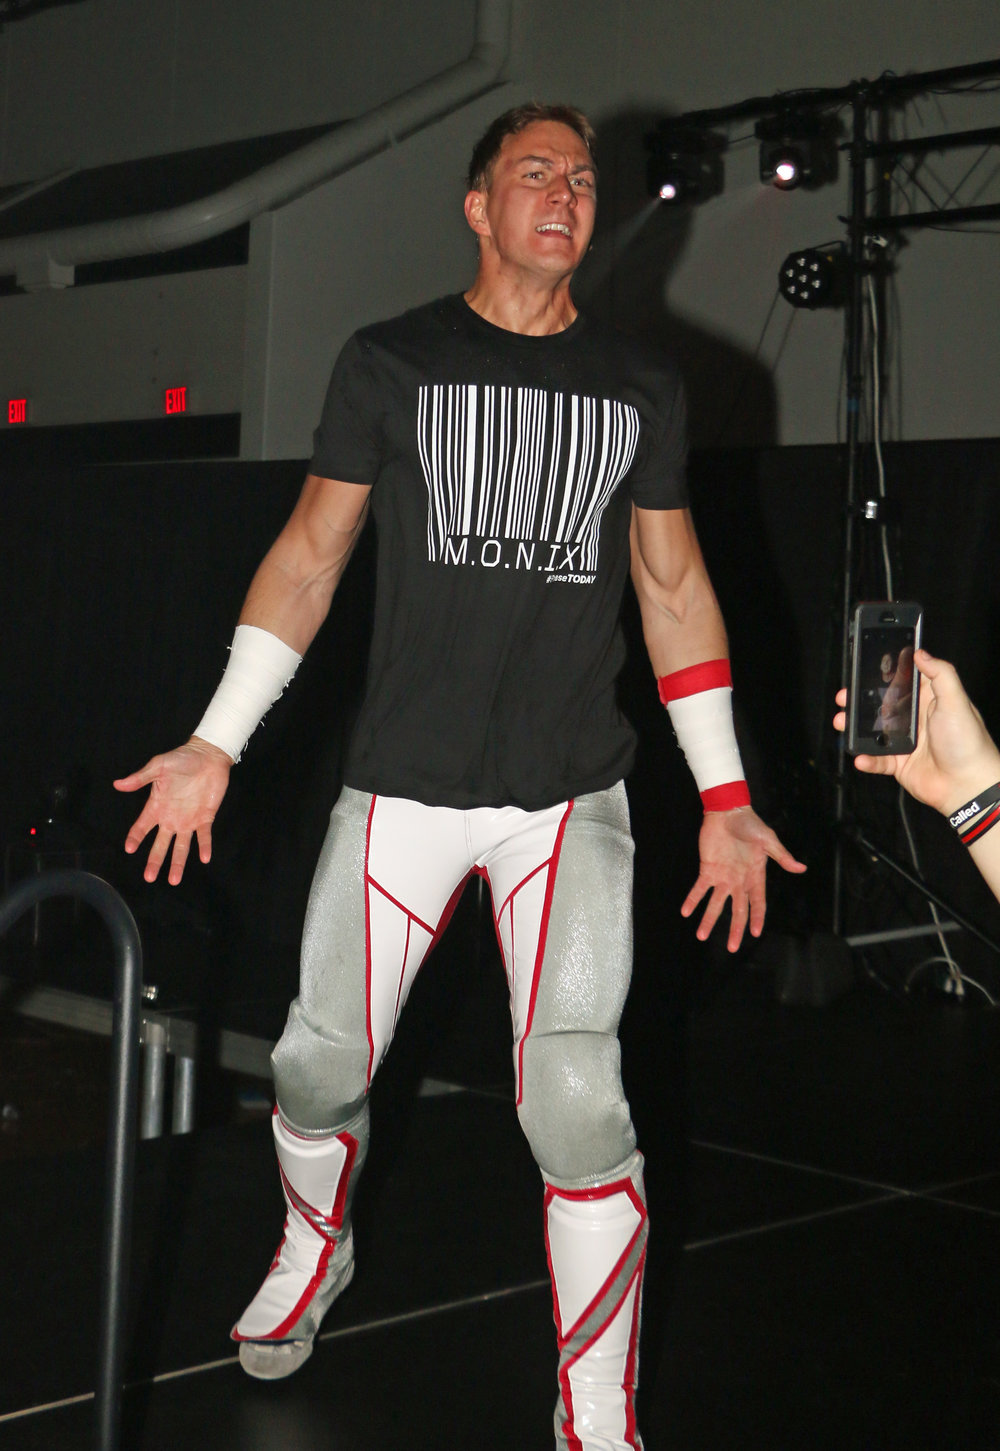 Chicago's Pat Monix enters the arena before the Lucha Libre trios match against Sam Adonis' team.